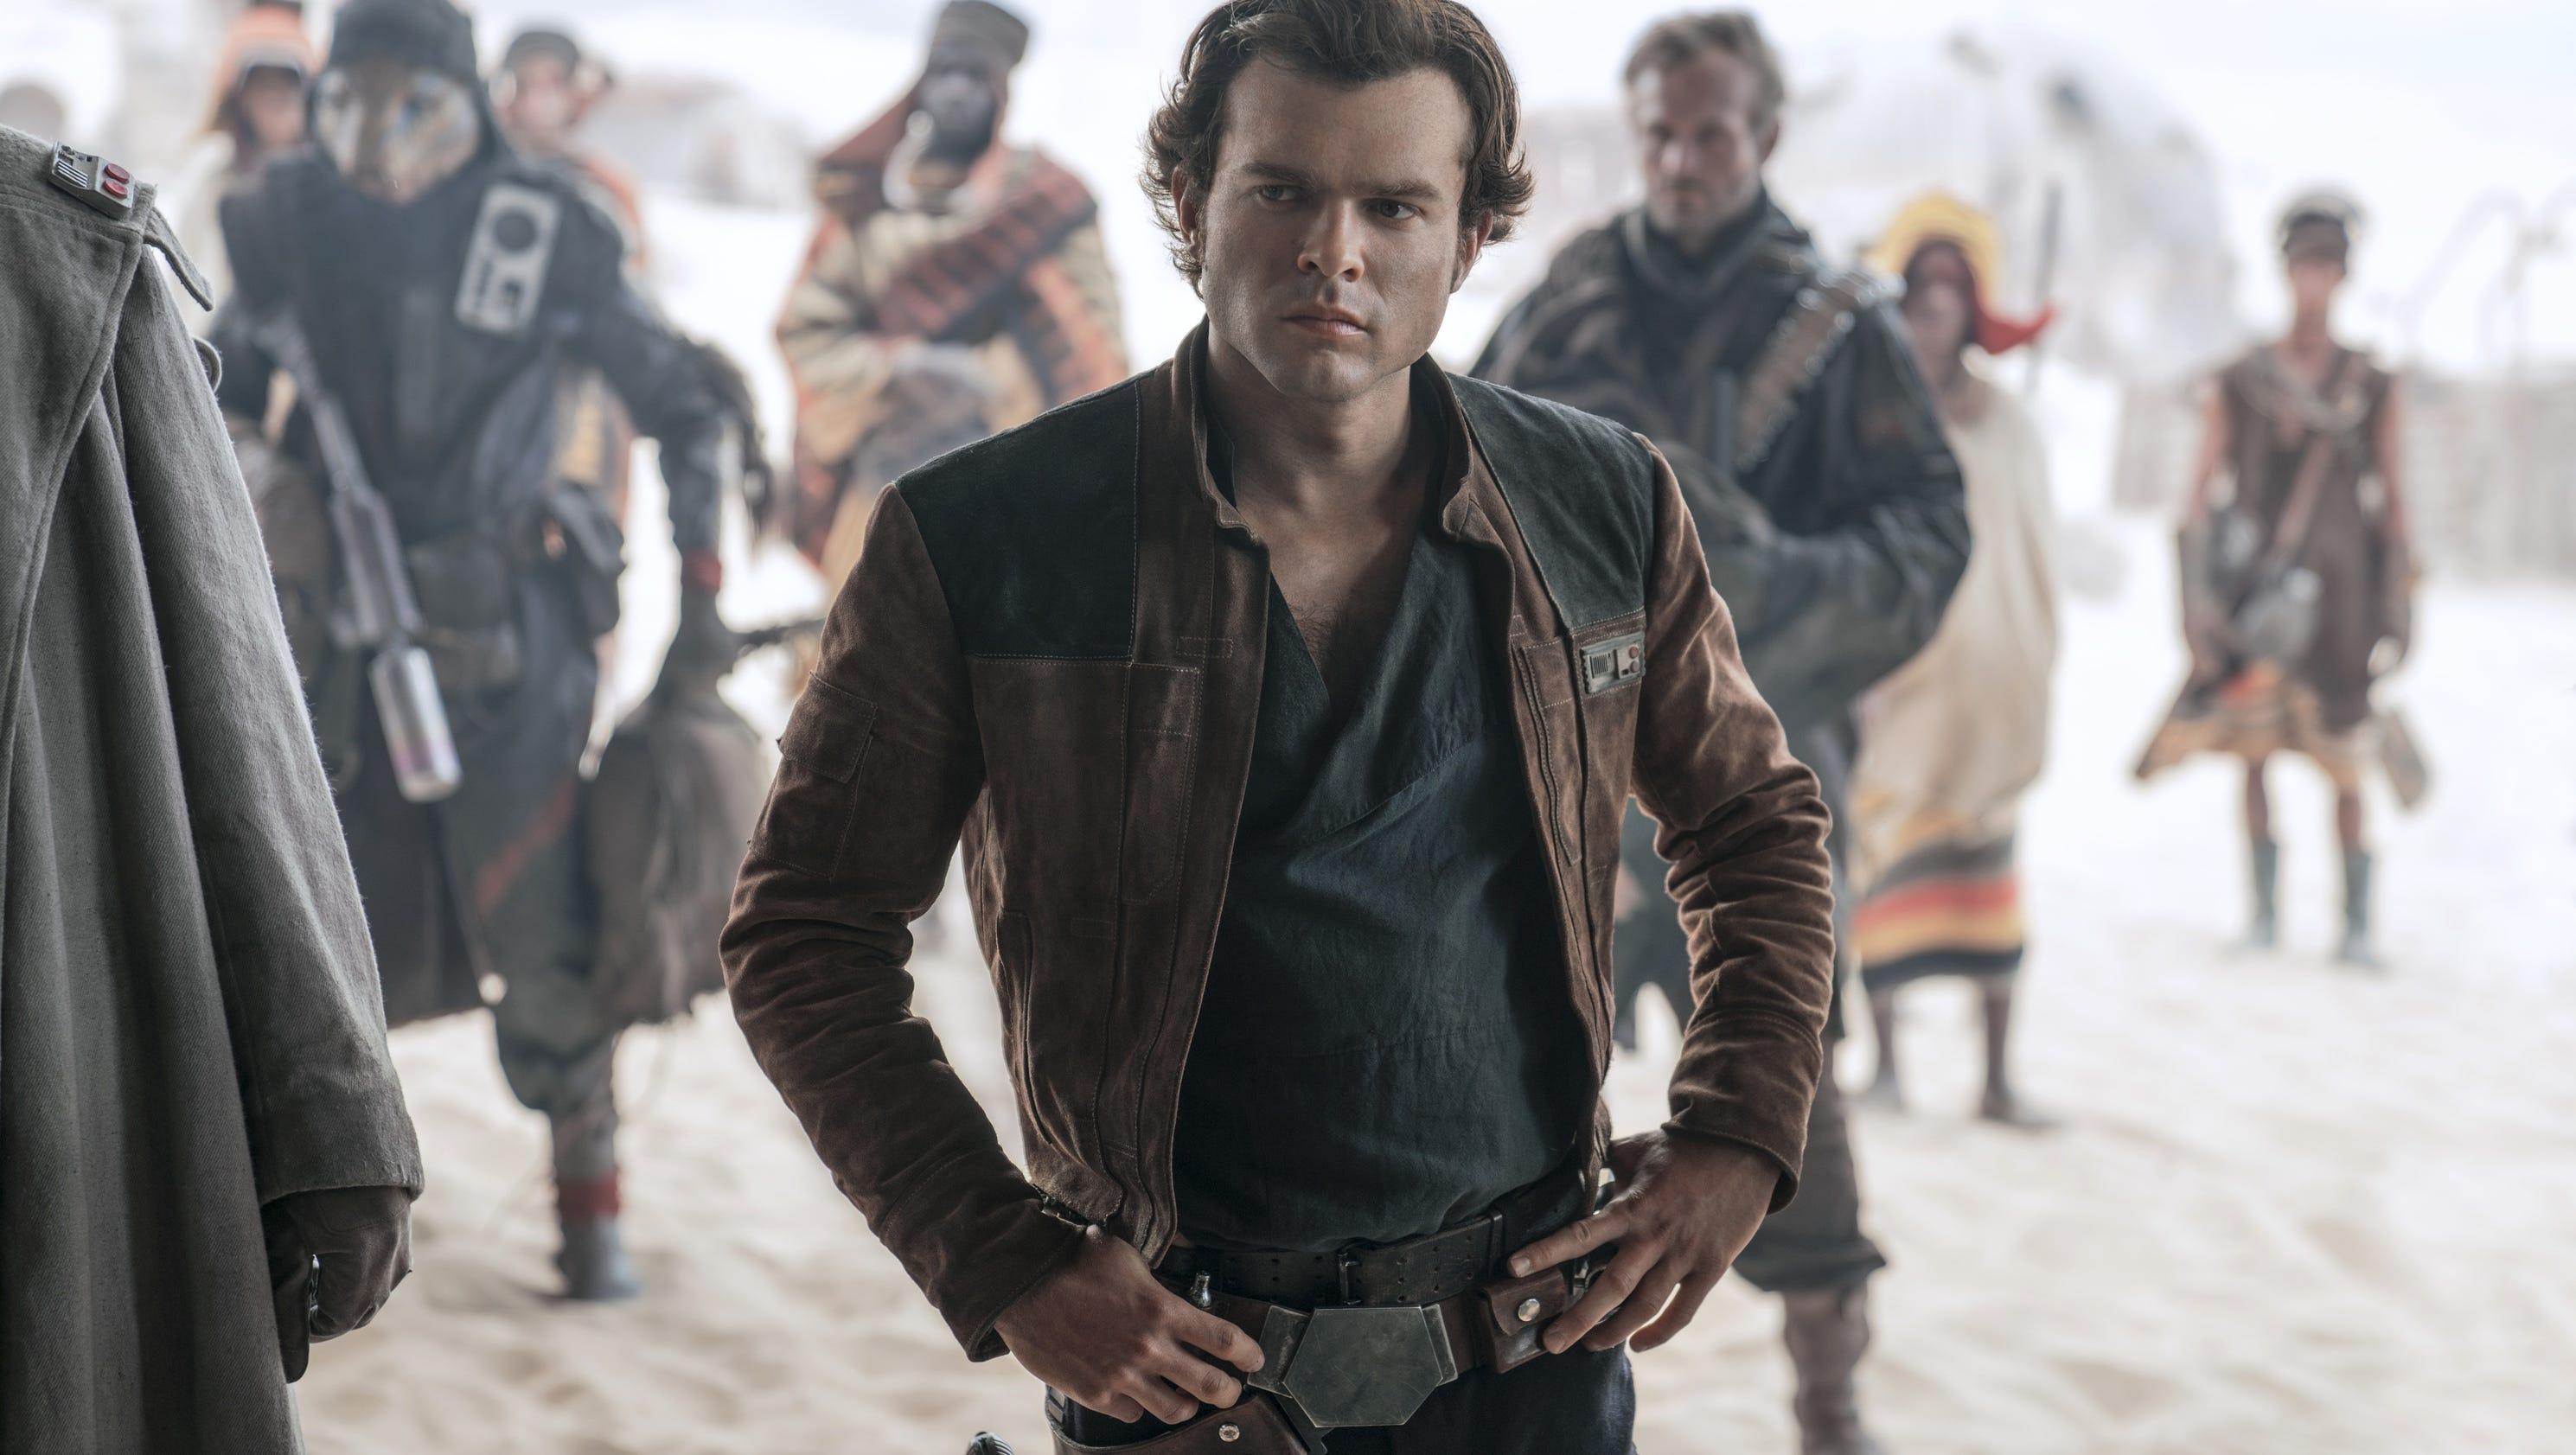 'Solo: A Star Wars Story' premiere earns mixed first reactions: Film is 'kinda a blast'